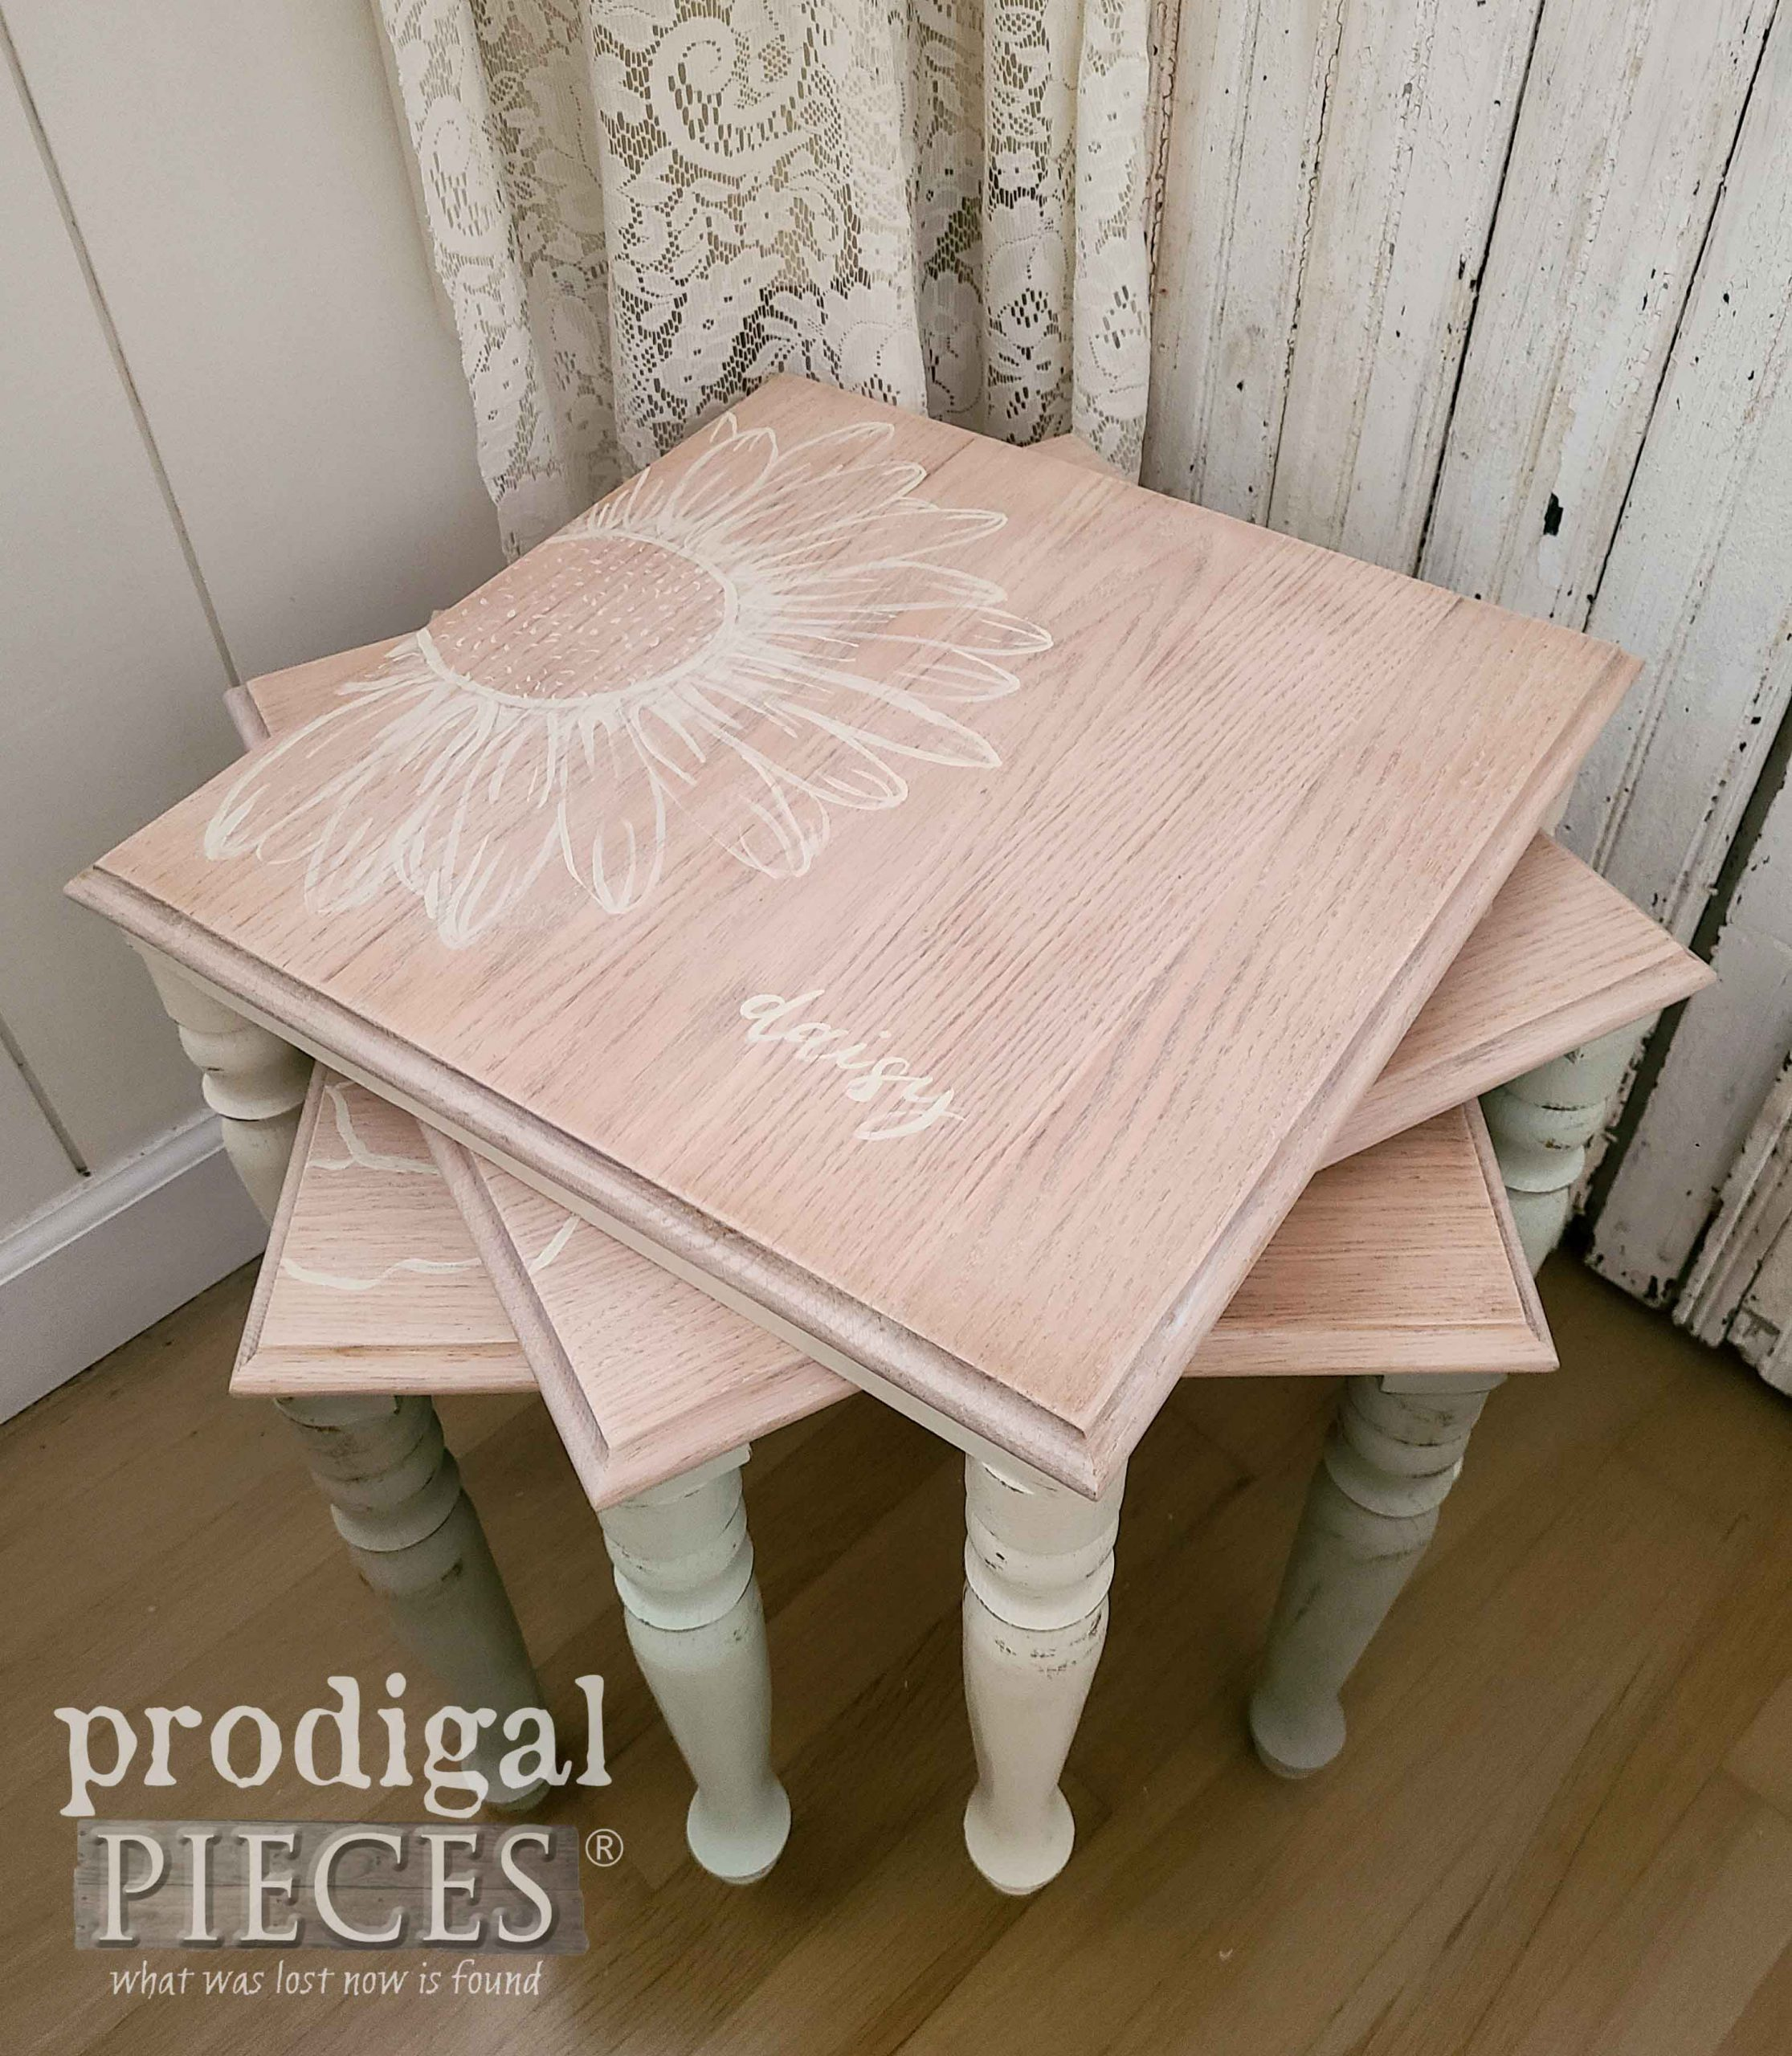 Hand-Painted Vintage Stacking Tables with Floral Motif by Larissa of Prodigal Pieces | prodigalpieces.com #prodigalpieces #furniture #vintage #handmade #homedecor